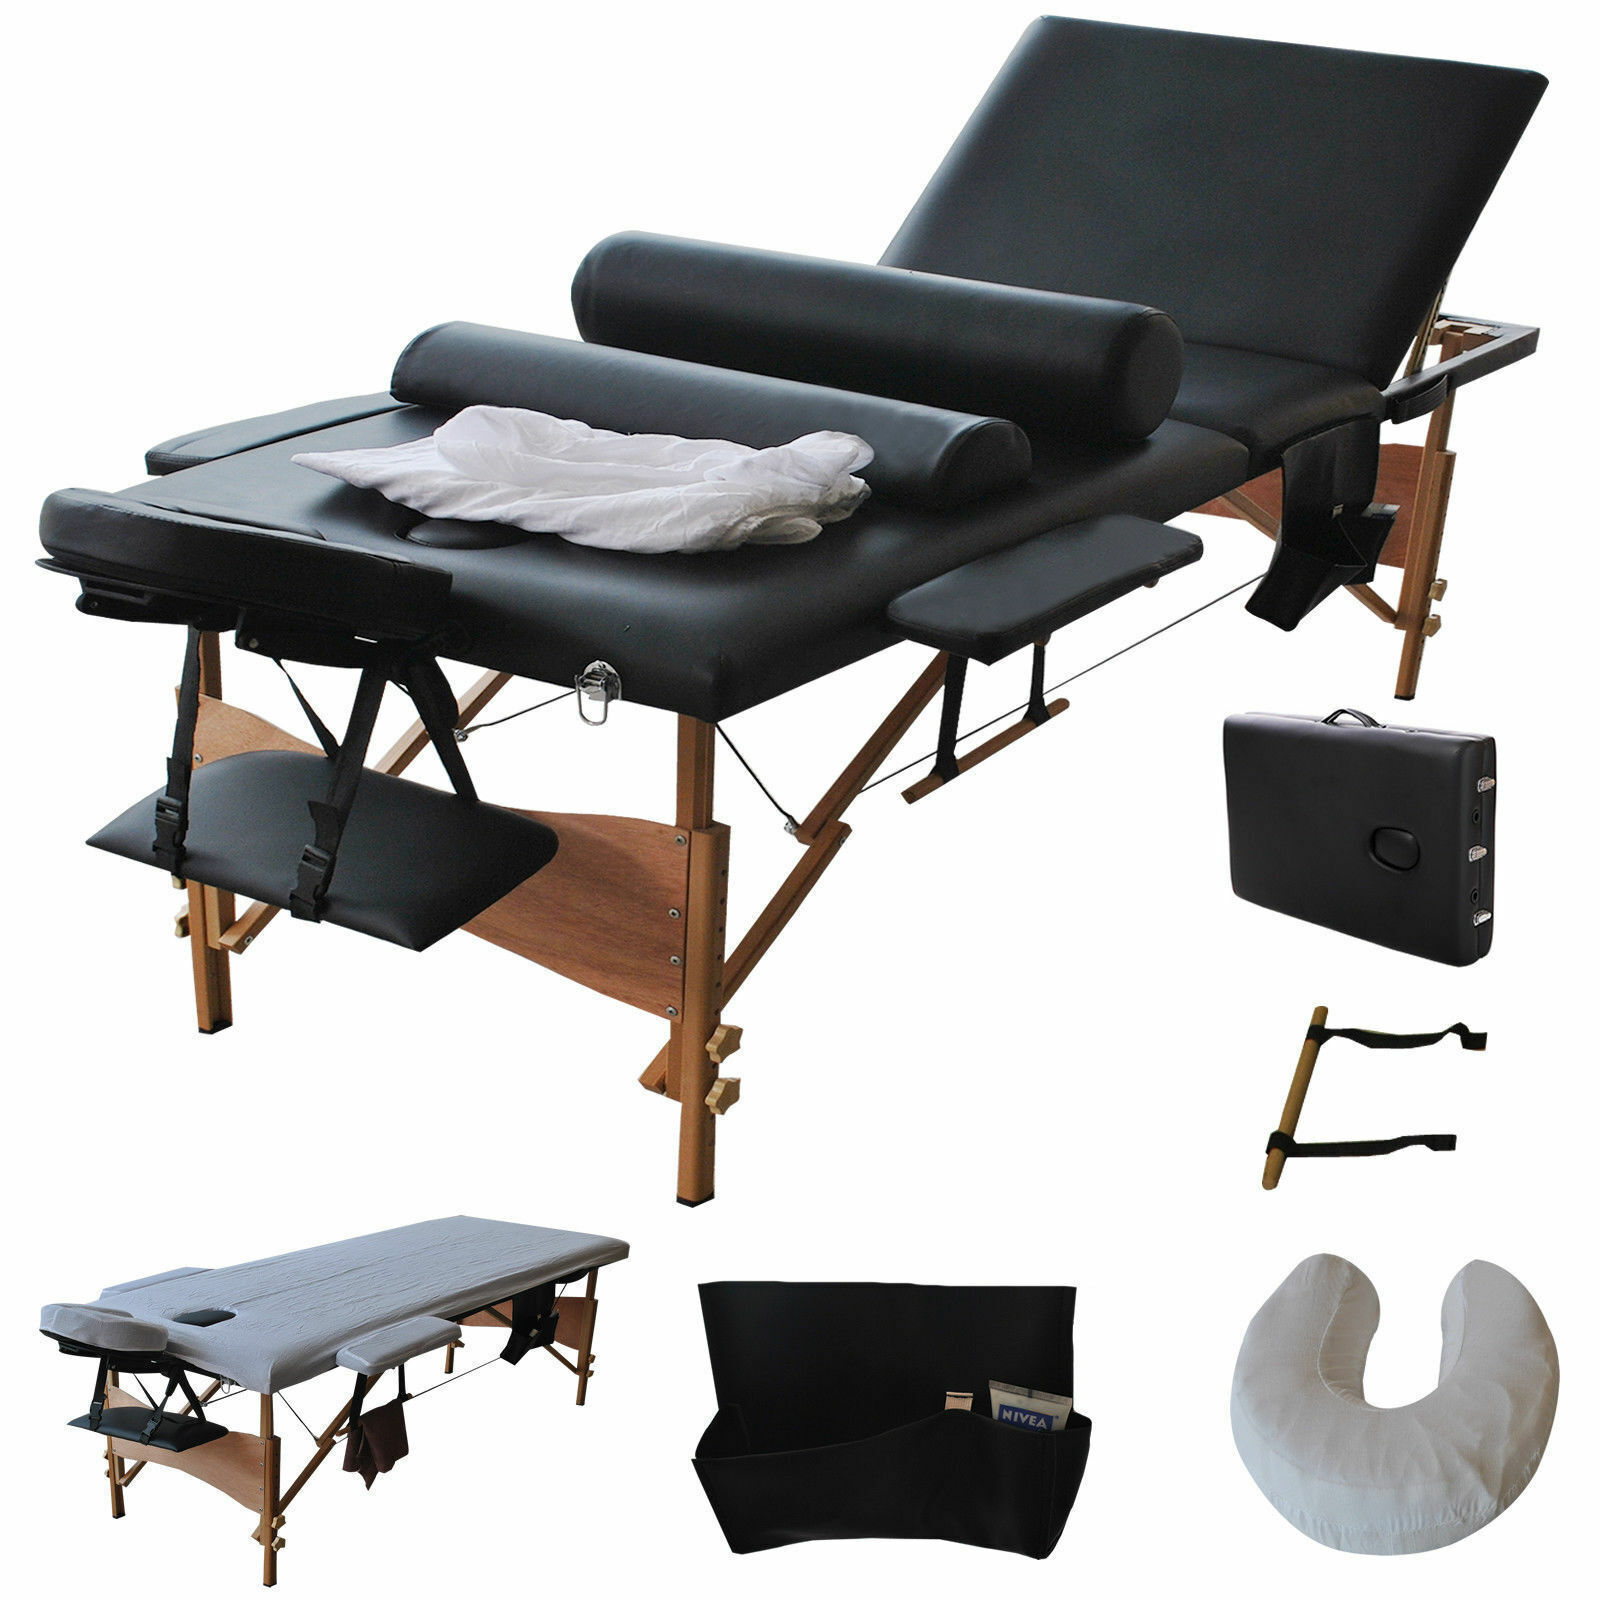 Table Facial Bed Portable W/2 Bolster+Sheet+Cradle Cover 3 F